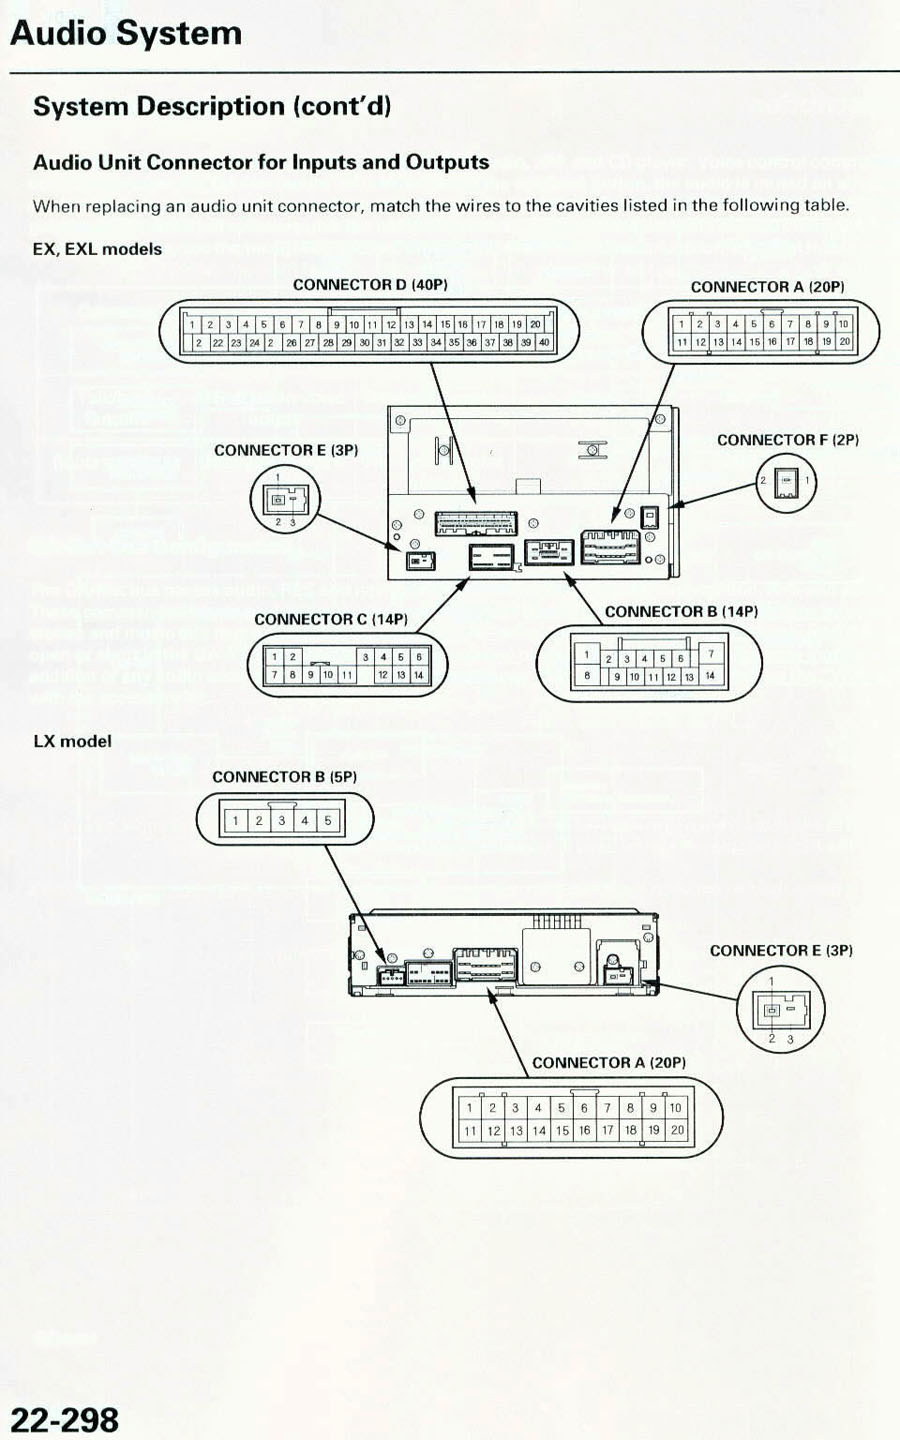 fan wiring diagram for 2006 jeep grand cherokee file type: jpg audio_connector 2006.jpg (182.0 kb, 22742 ...